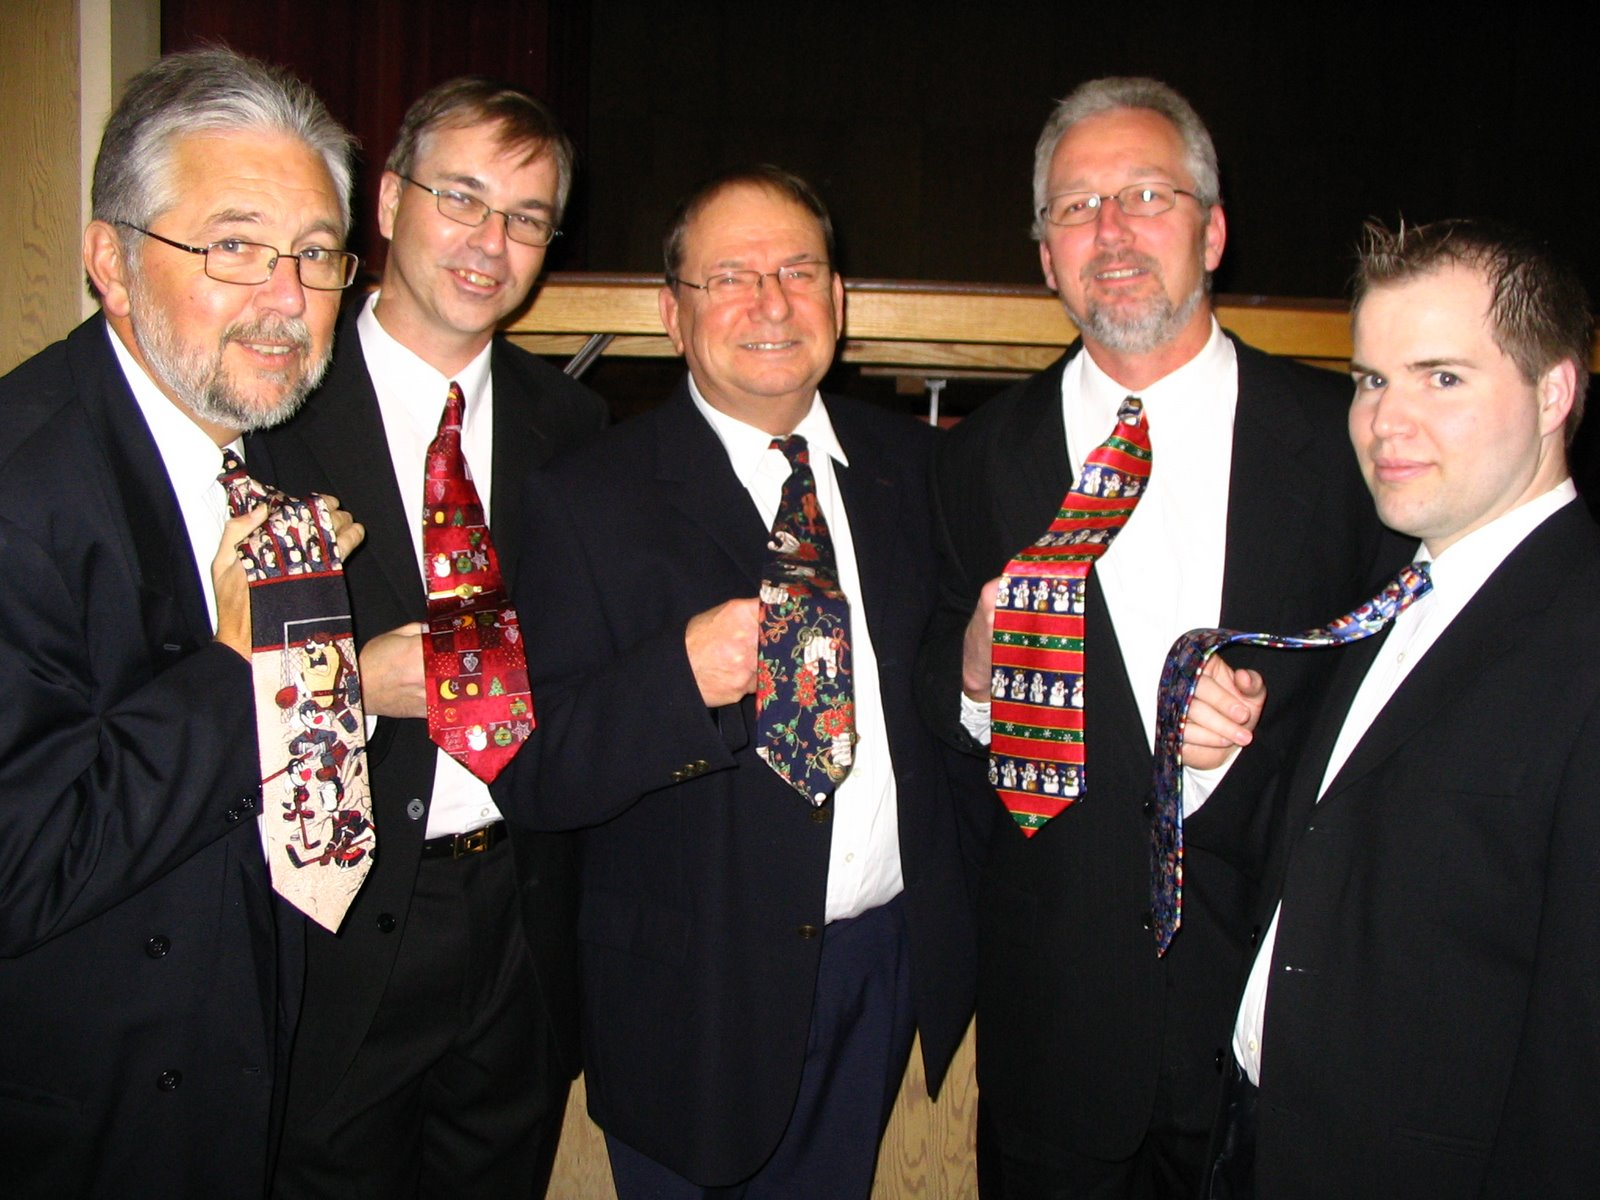 tie picture